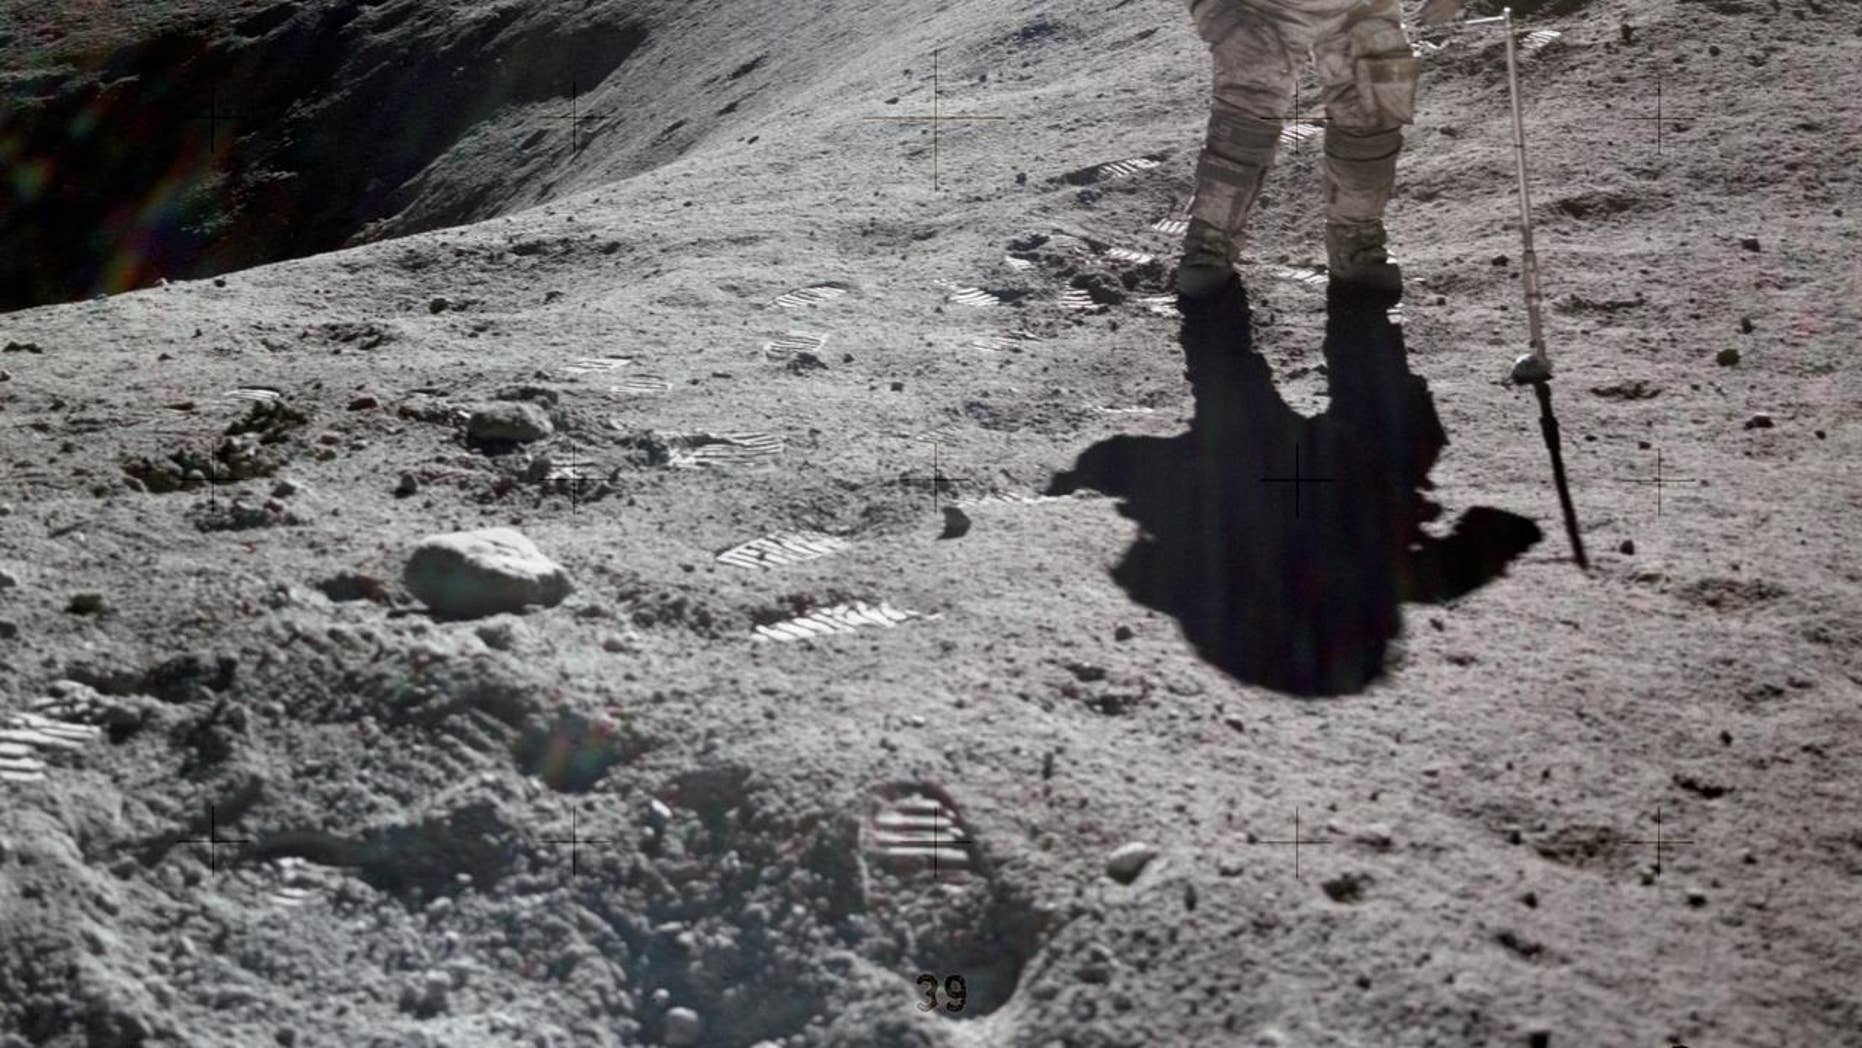 Charles Duke, Apollo 16's lunar procedure pilot, is photographed collecting lunar samples during Station No. 1, during a initial Apollo 16 extravehicular activity (EVA), during a Descartes alighting site. (NASA)